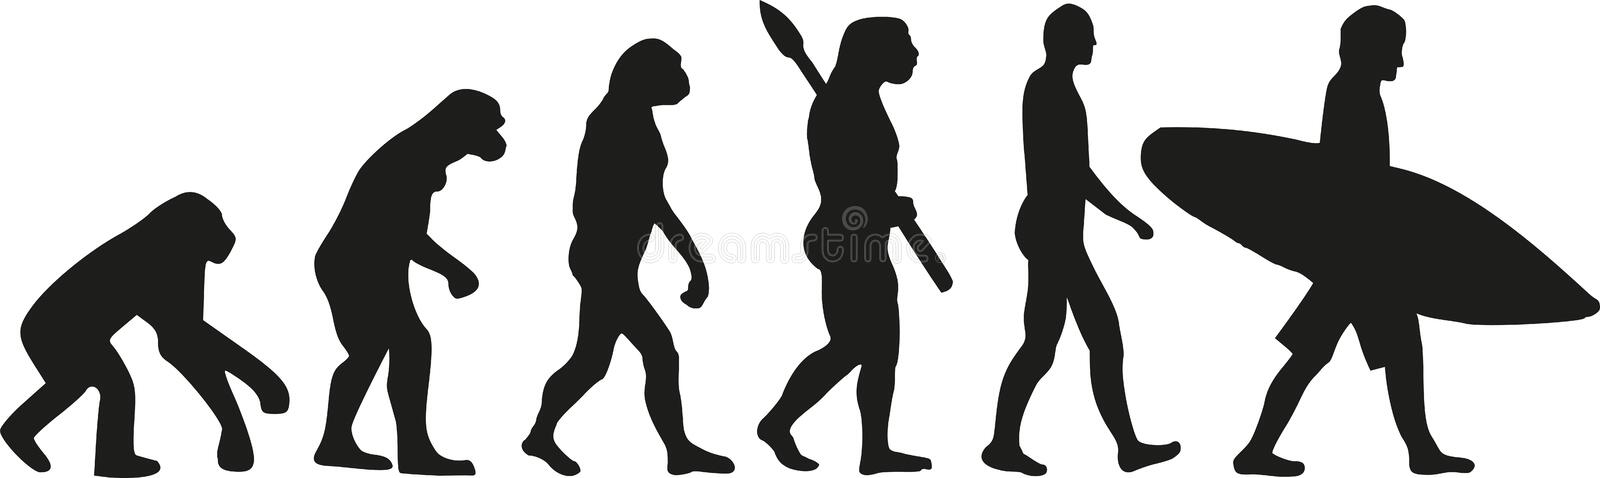 Evolution surfer. Vector sports icon royalty free illustration